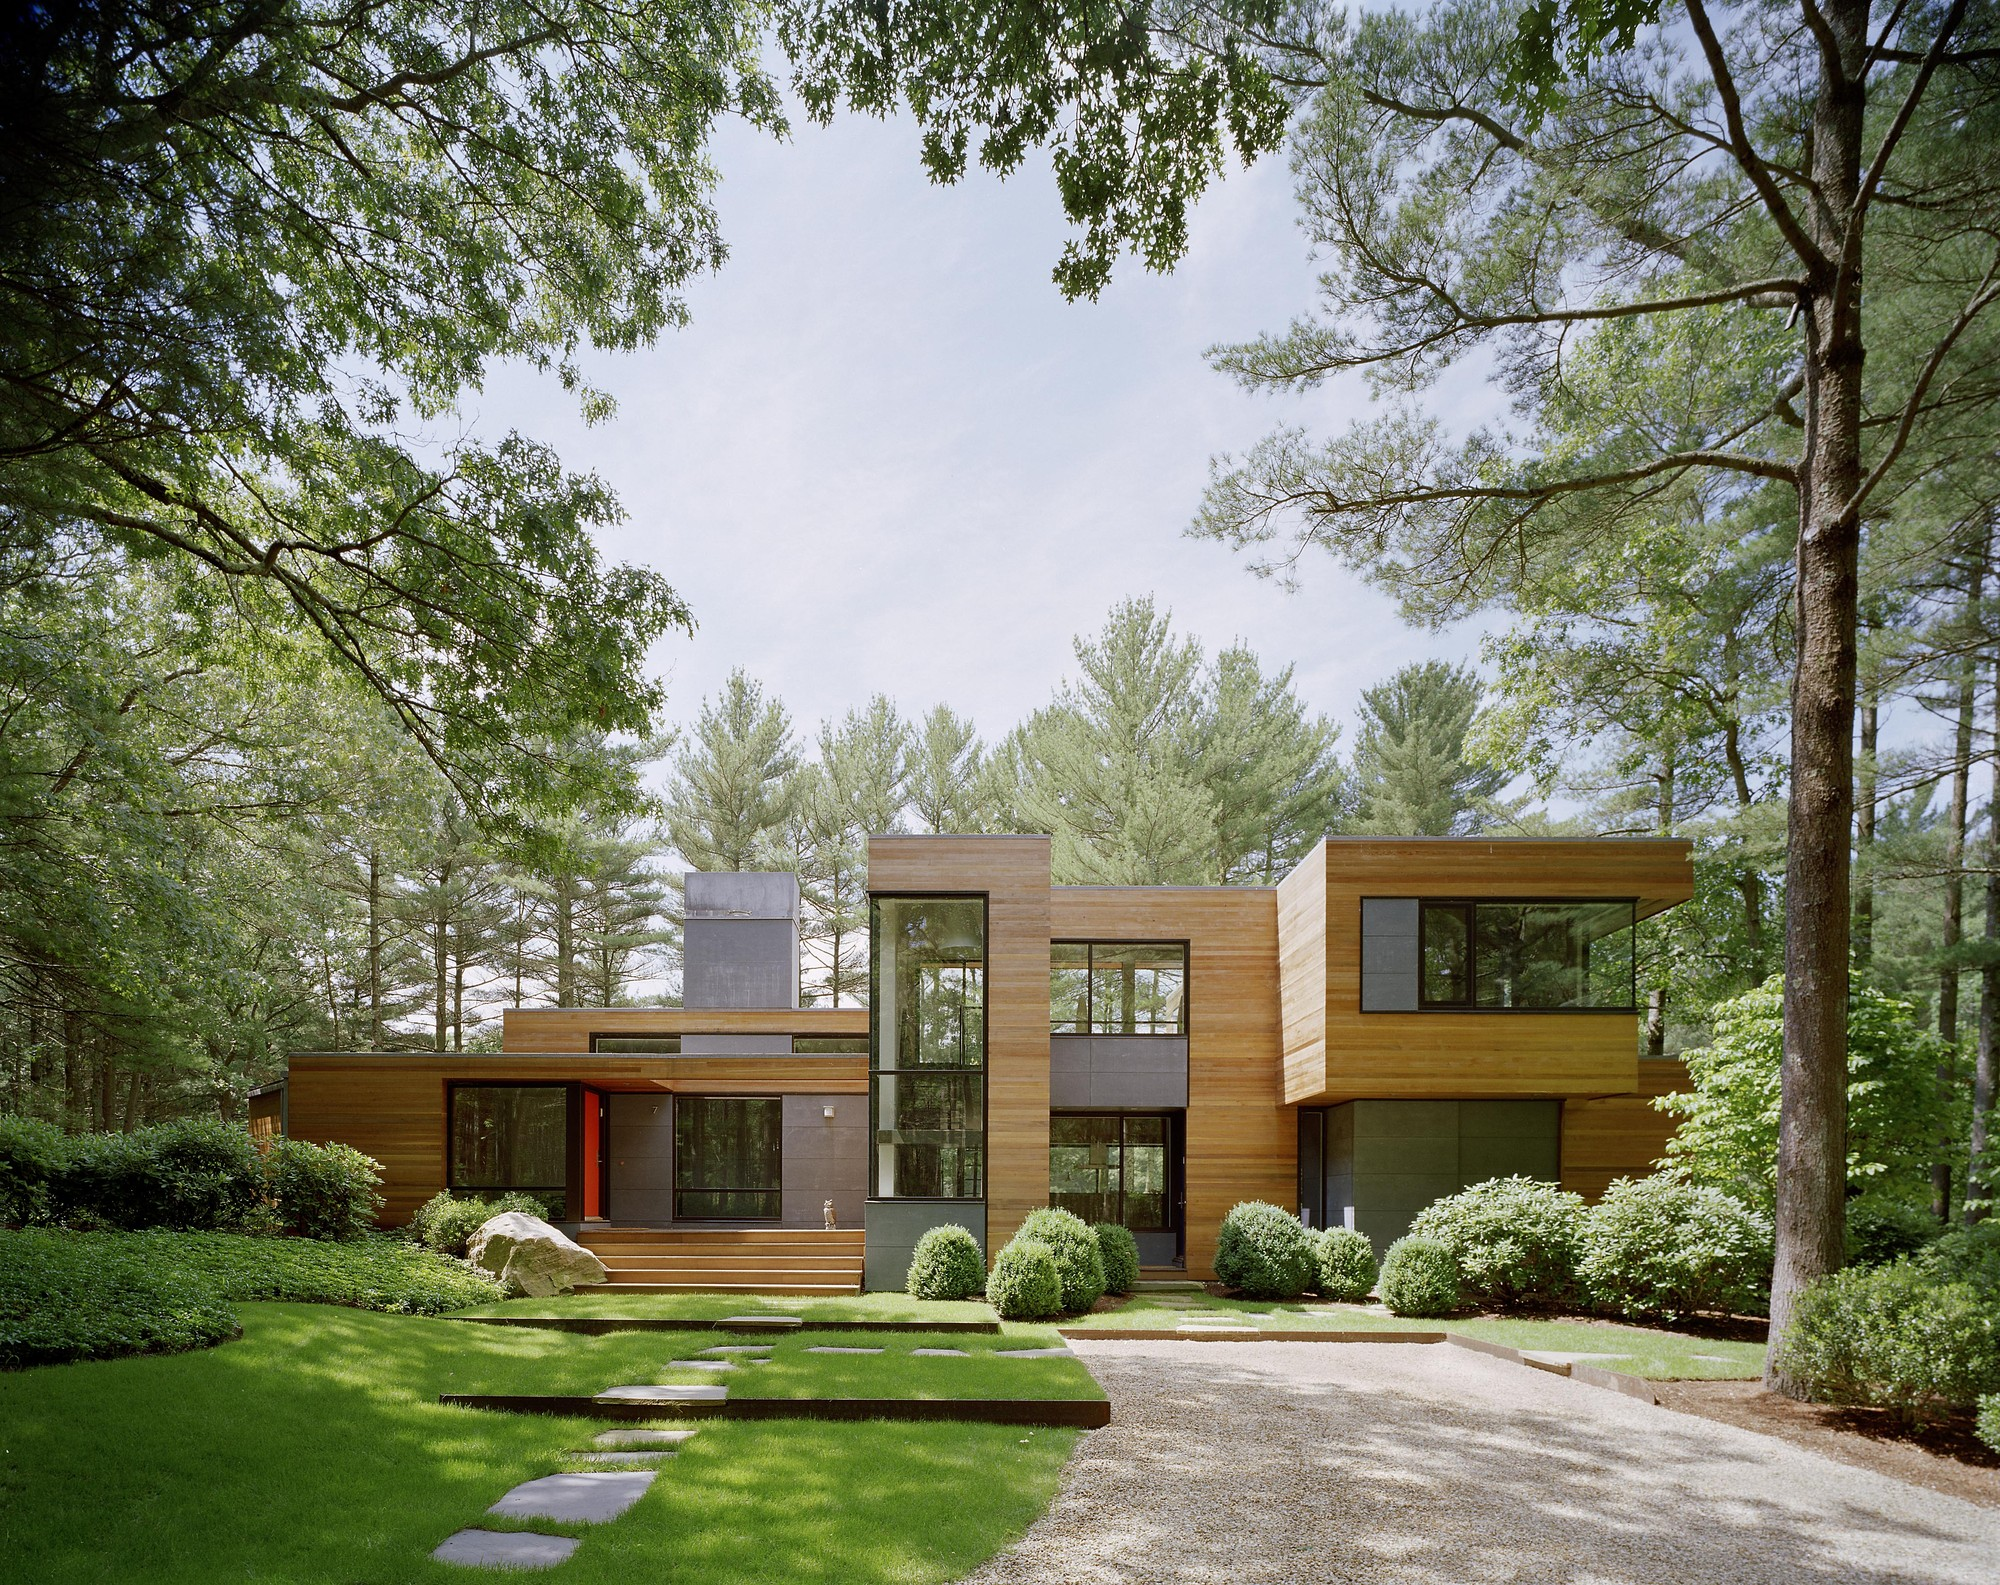 Kettle Hole House / Robert Young, © Frank Oudeman